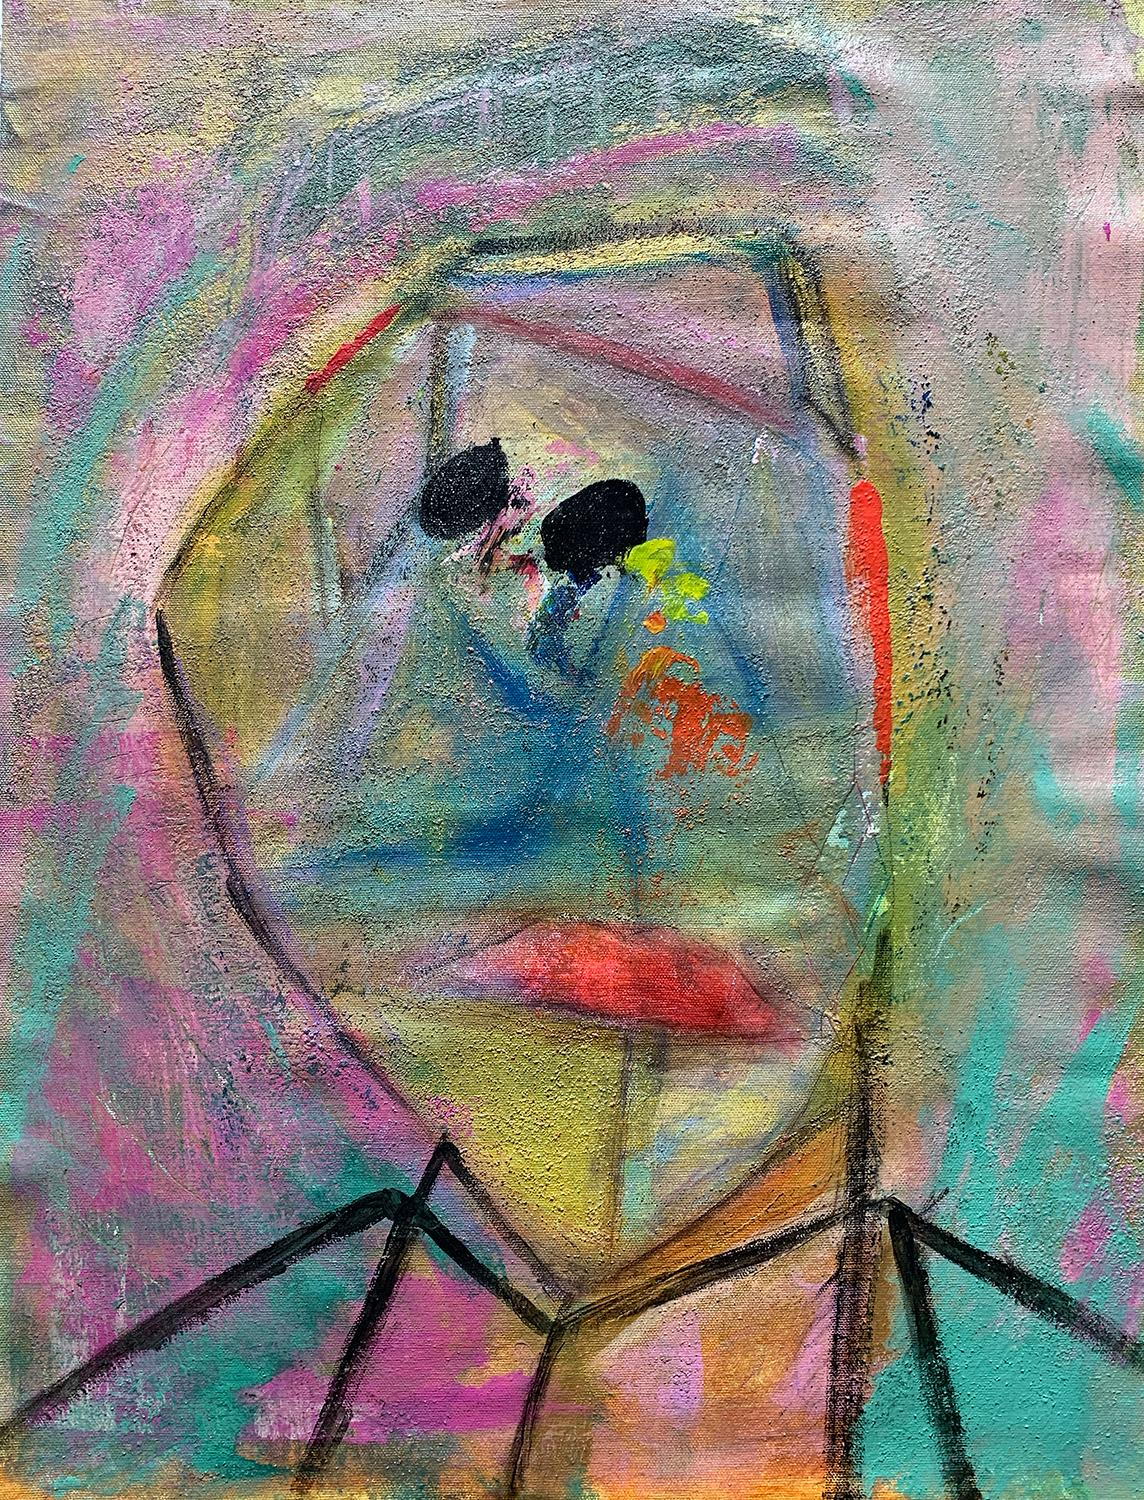 The Magician, Acrylic Sand Pastel Stick Contemporary Abstract Painting on Canvas